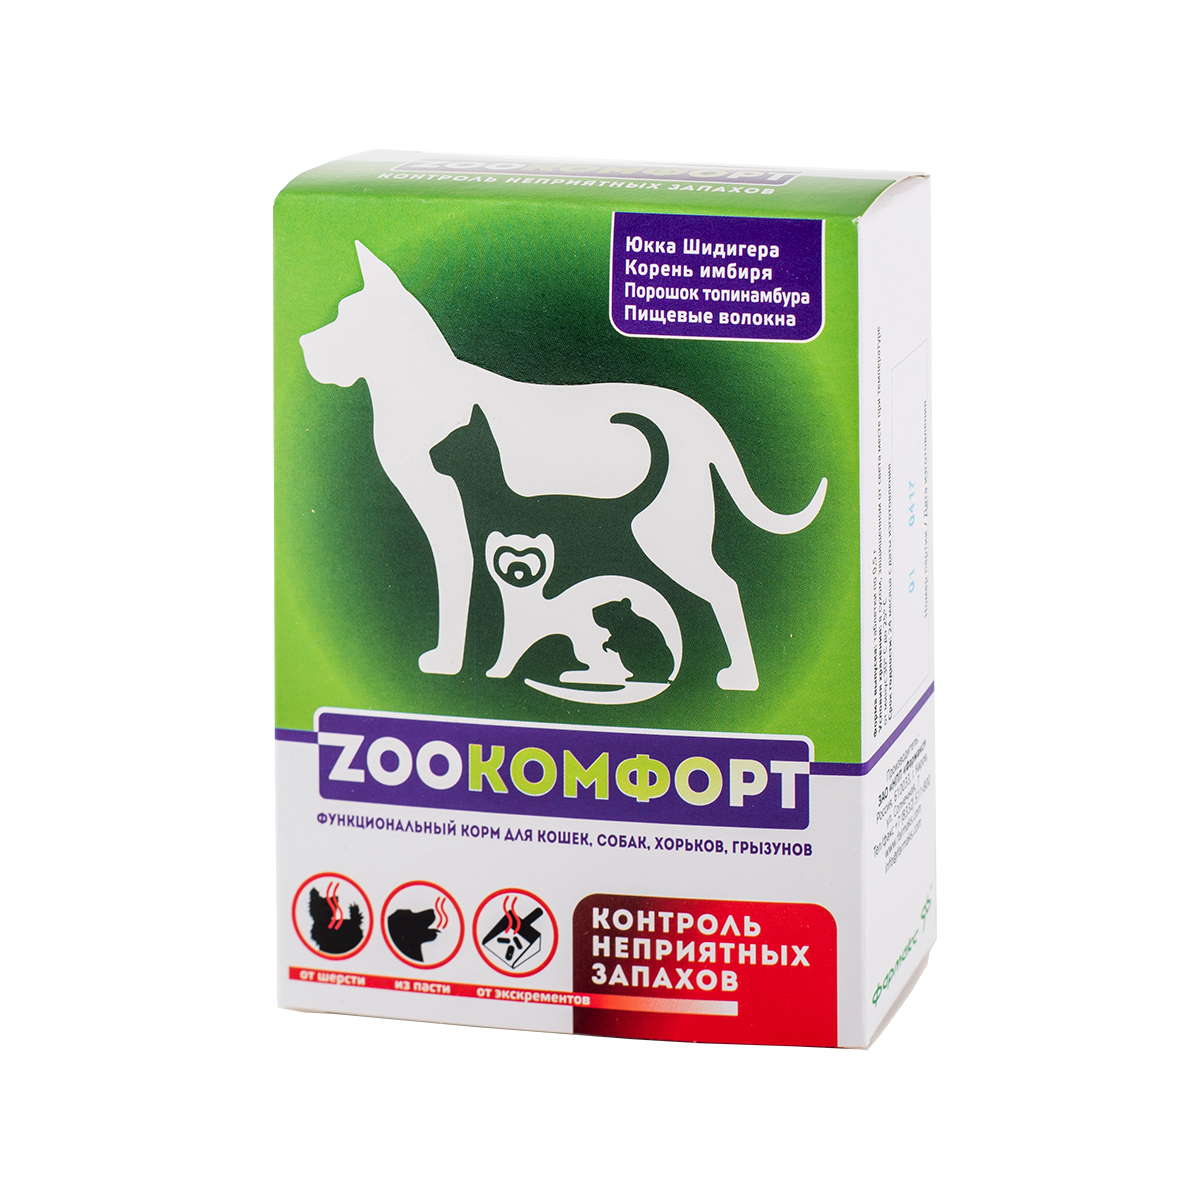 Zoocomfort for cats, dogs, ferrets and rodents